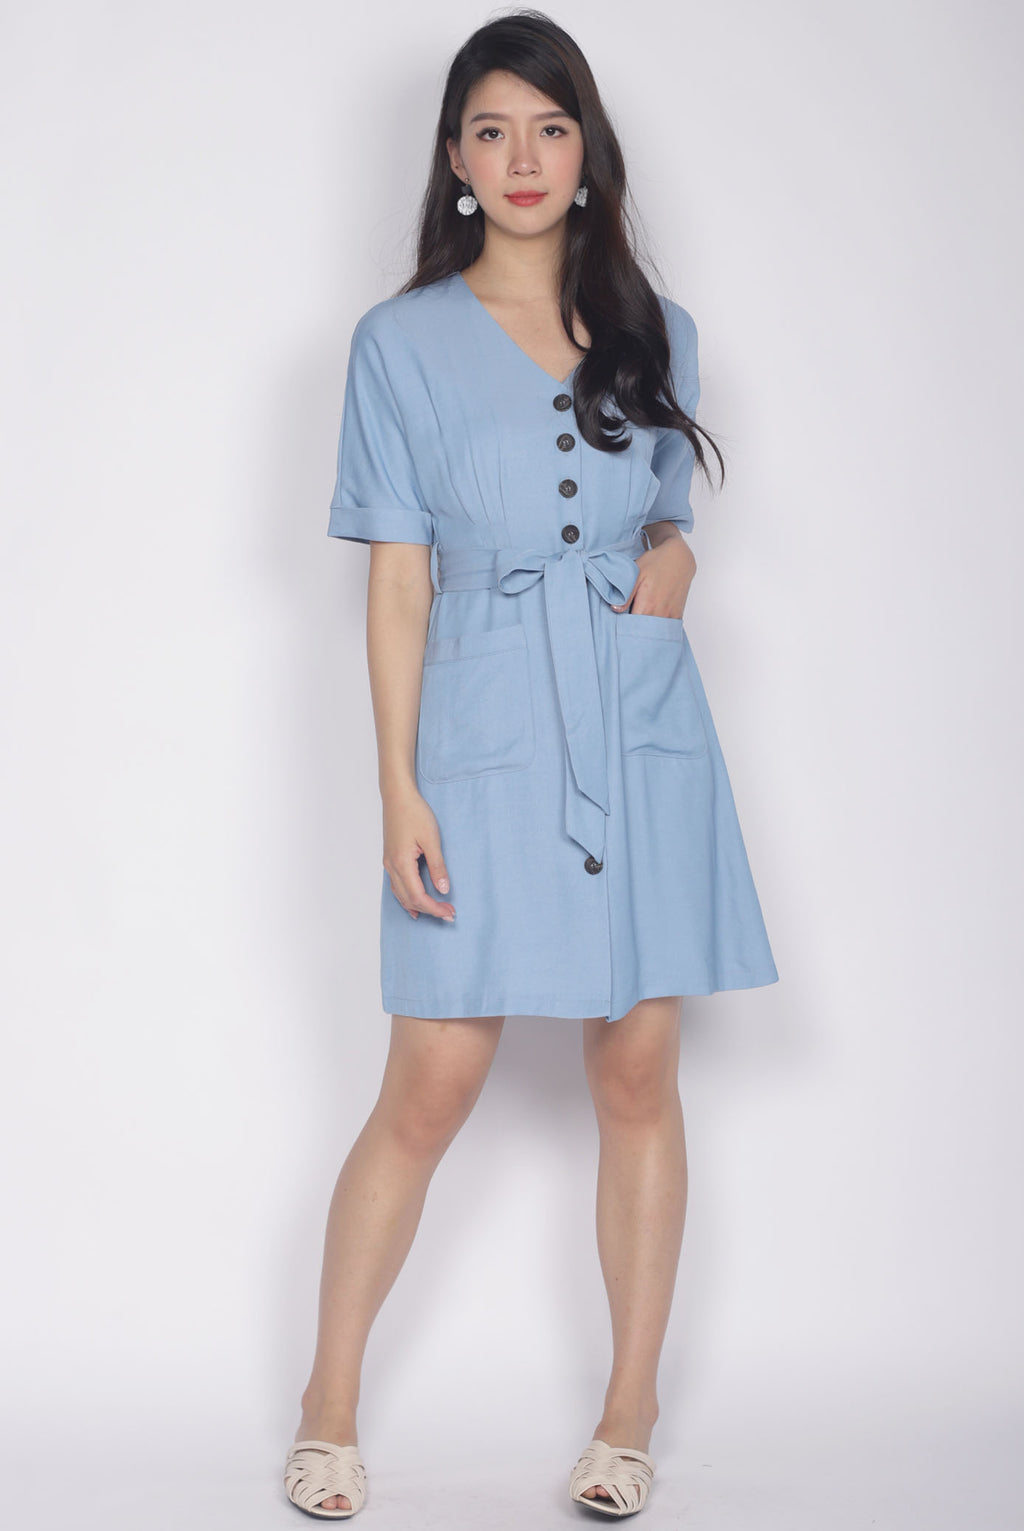 Perry Sleeved Pockets Dress In Blue